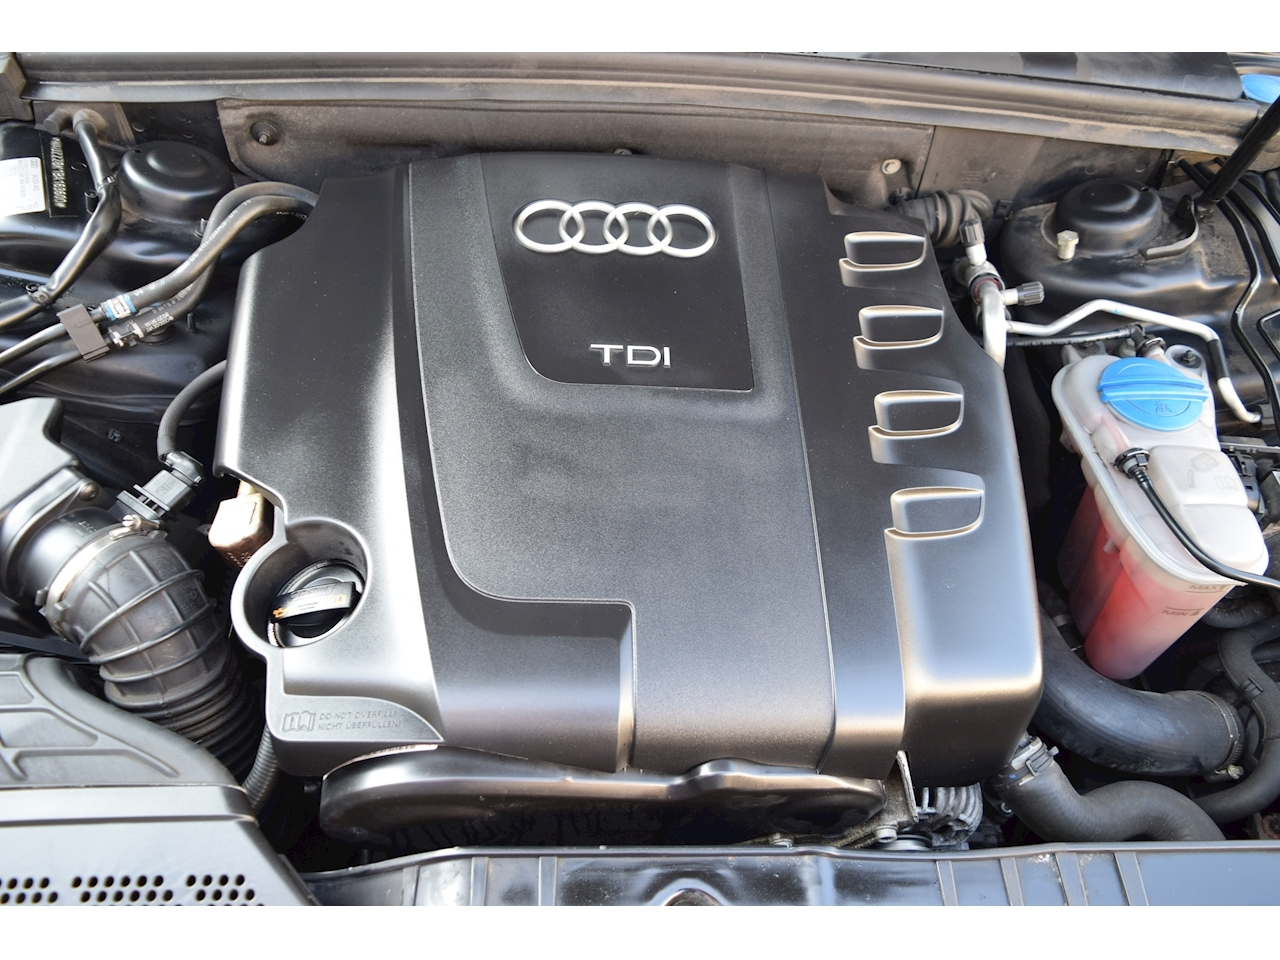 Audi A4 Avant Technik Estate 2.0 Manual Diesel